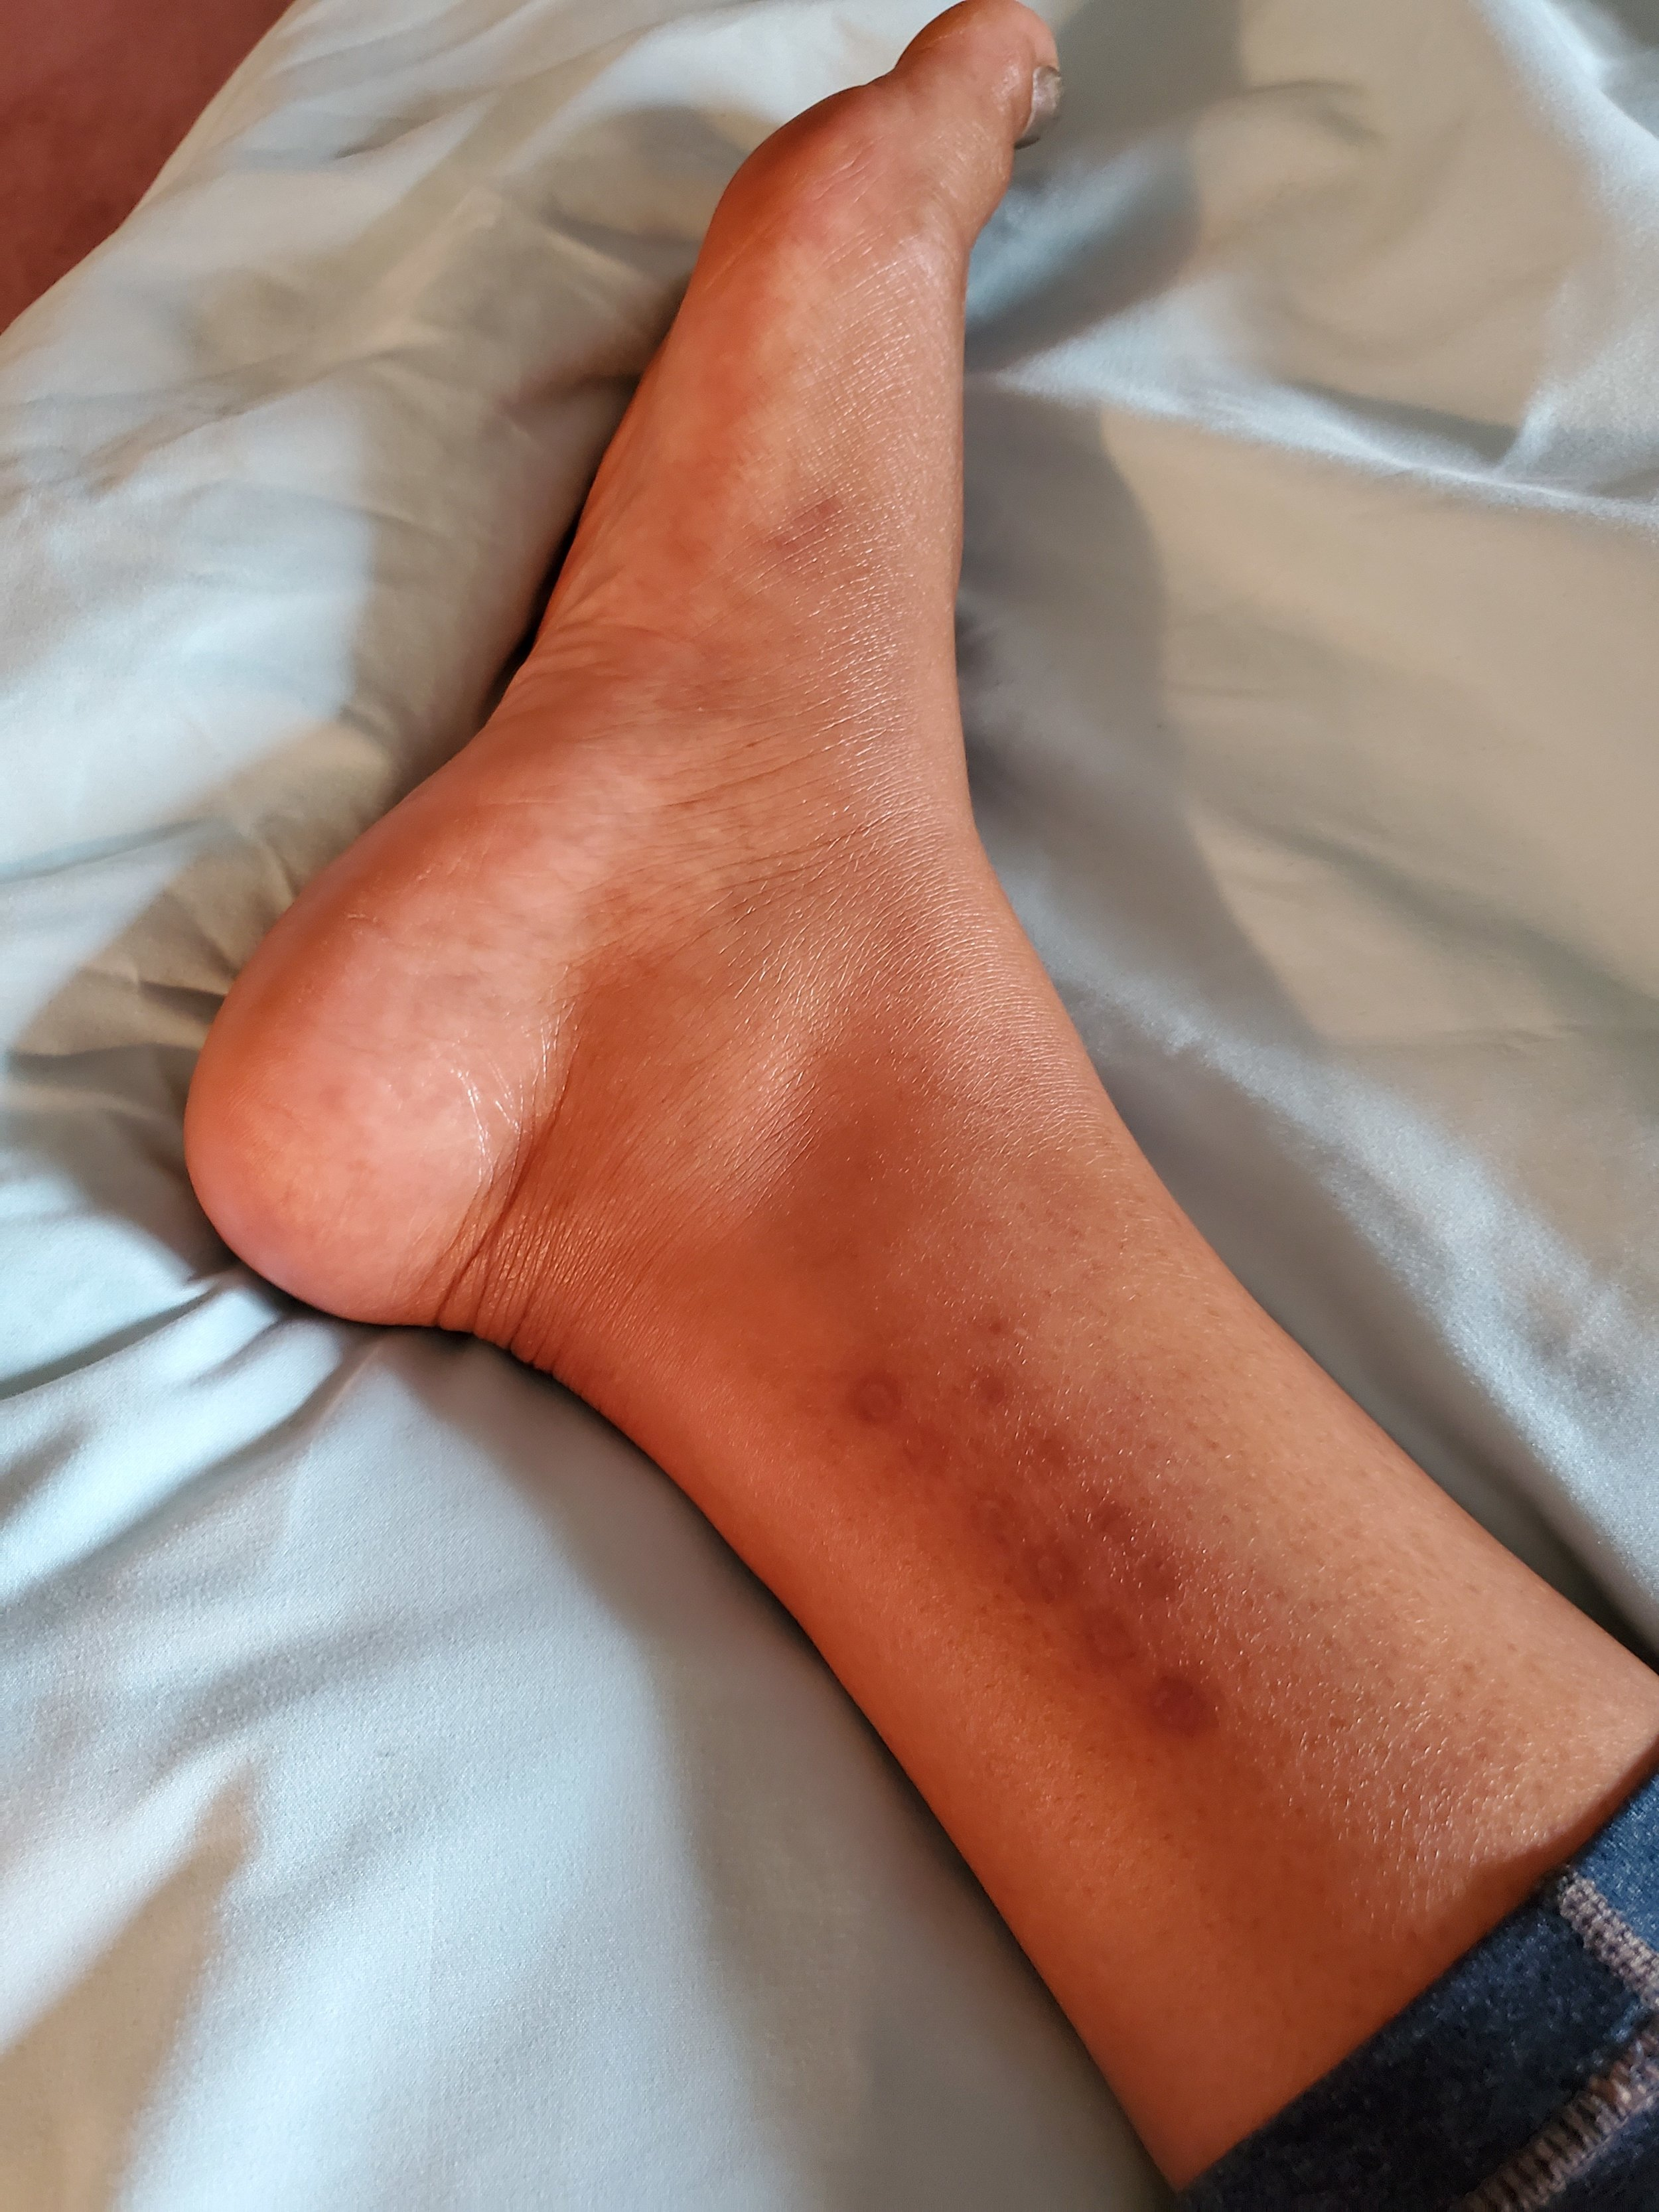 My Kambo scars after 3 ankle applications. I tended them so that the scars would be more prominent. I'm proud of the work that I did and the scars remind me of how strong I am.